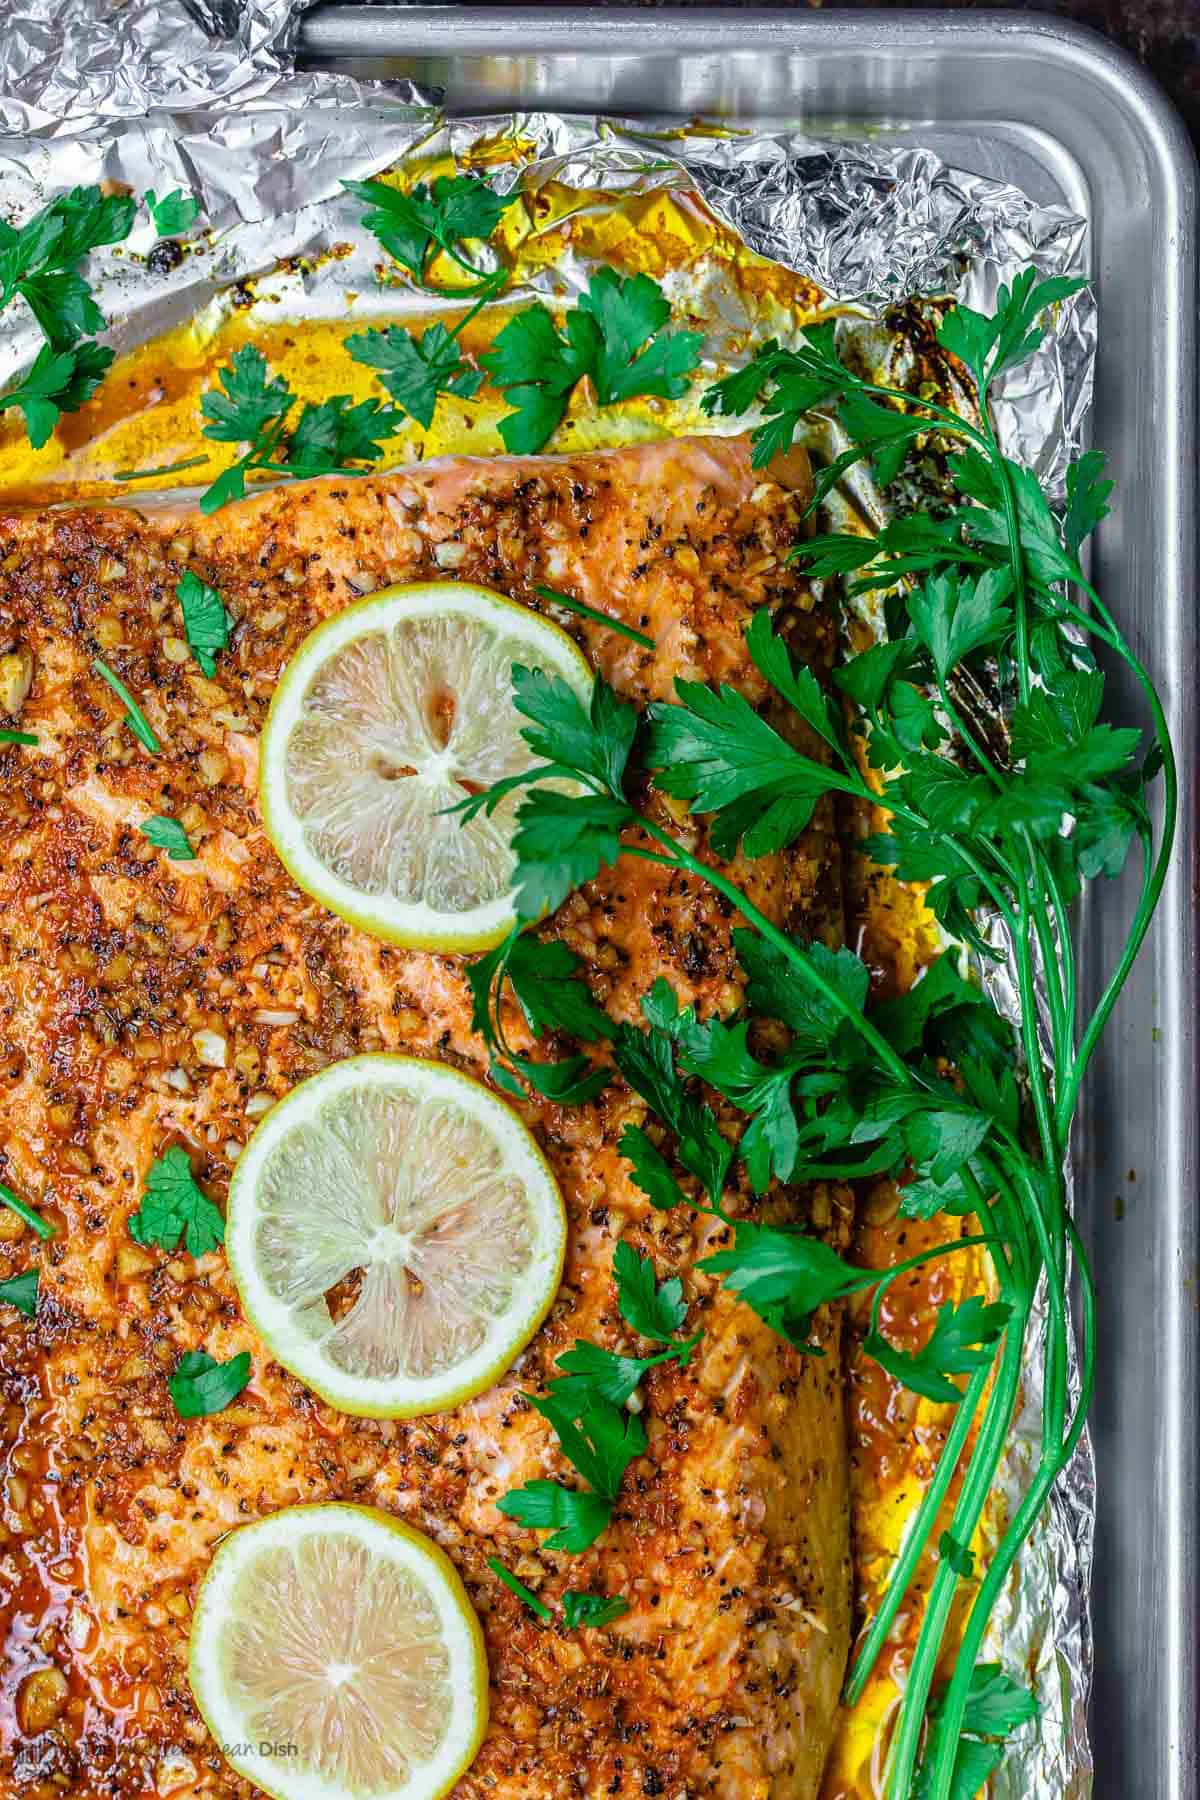 Lemon Garlic Salmon on Baking Sheet with Parsley Garnish and lemon slices